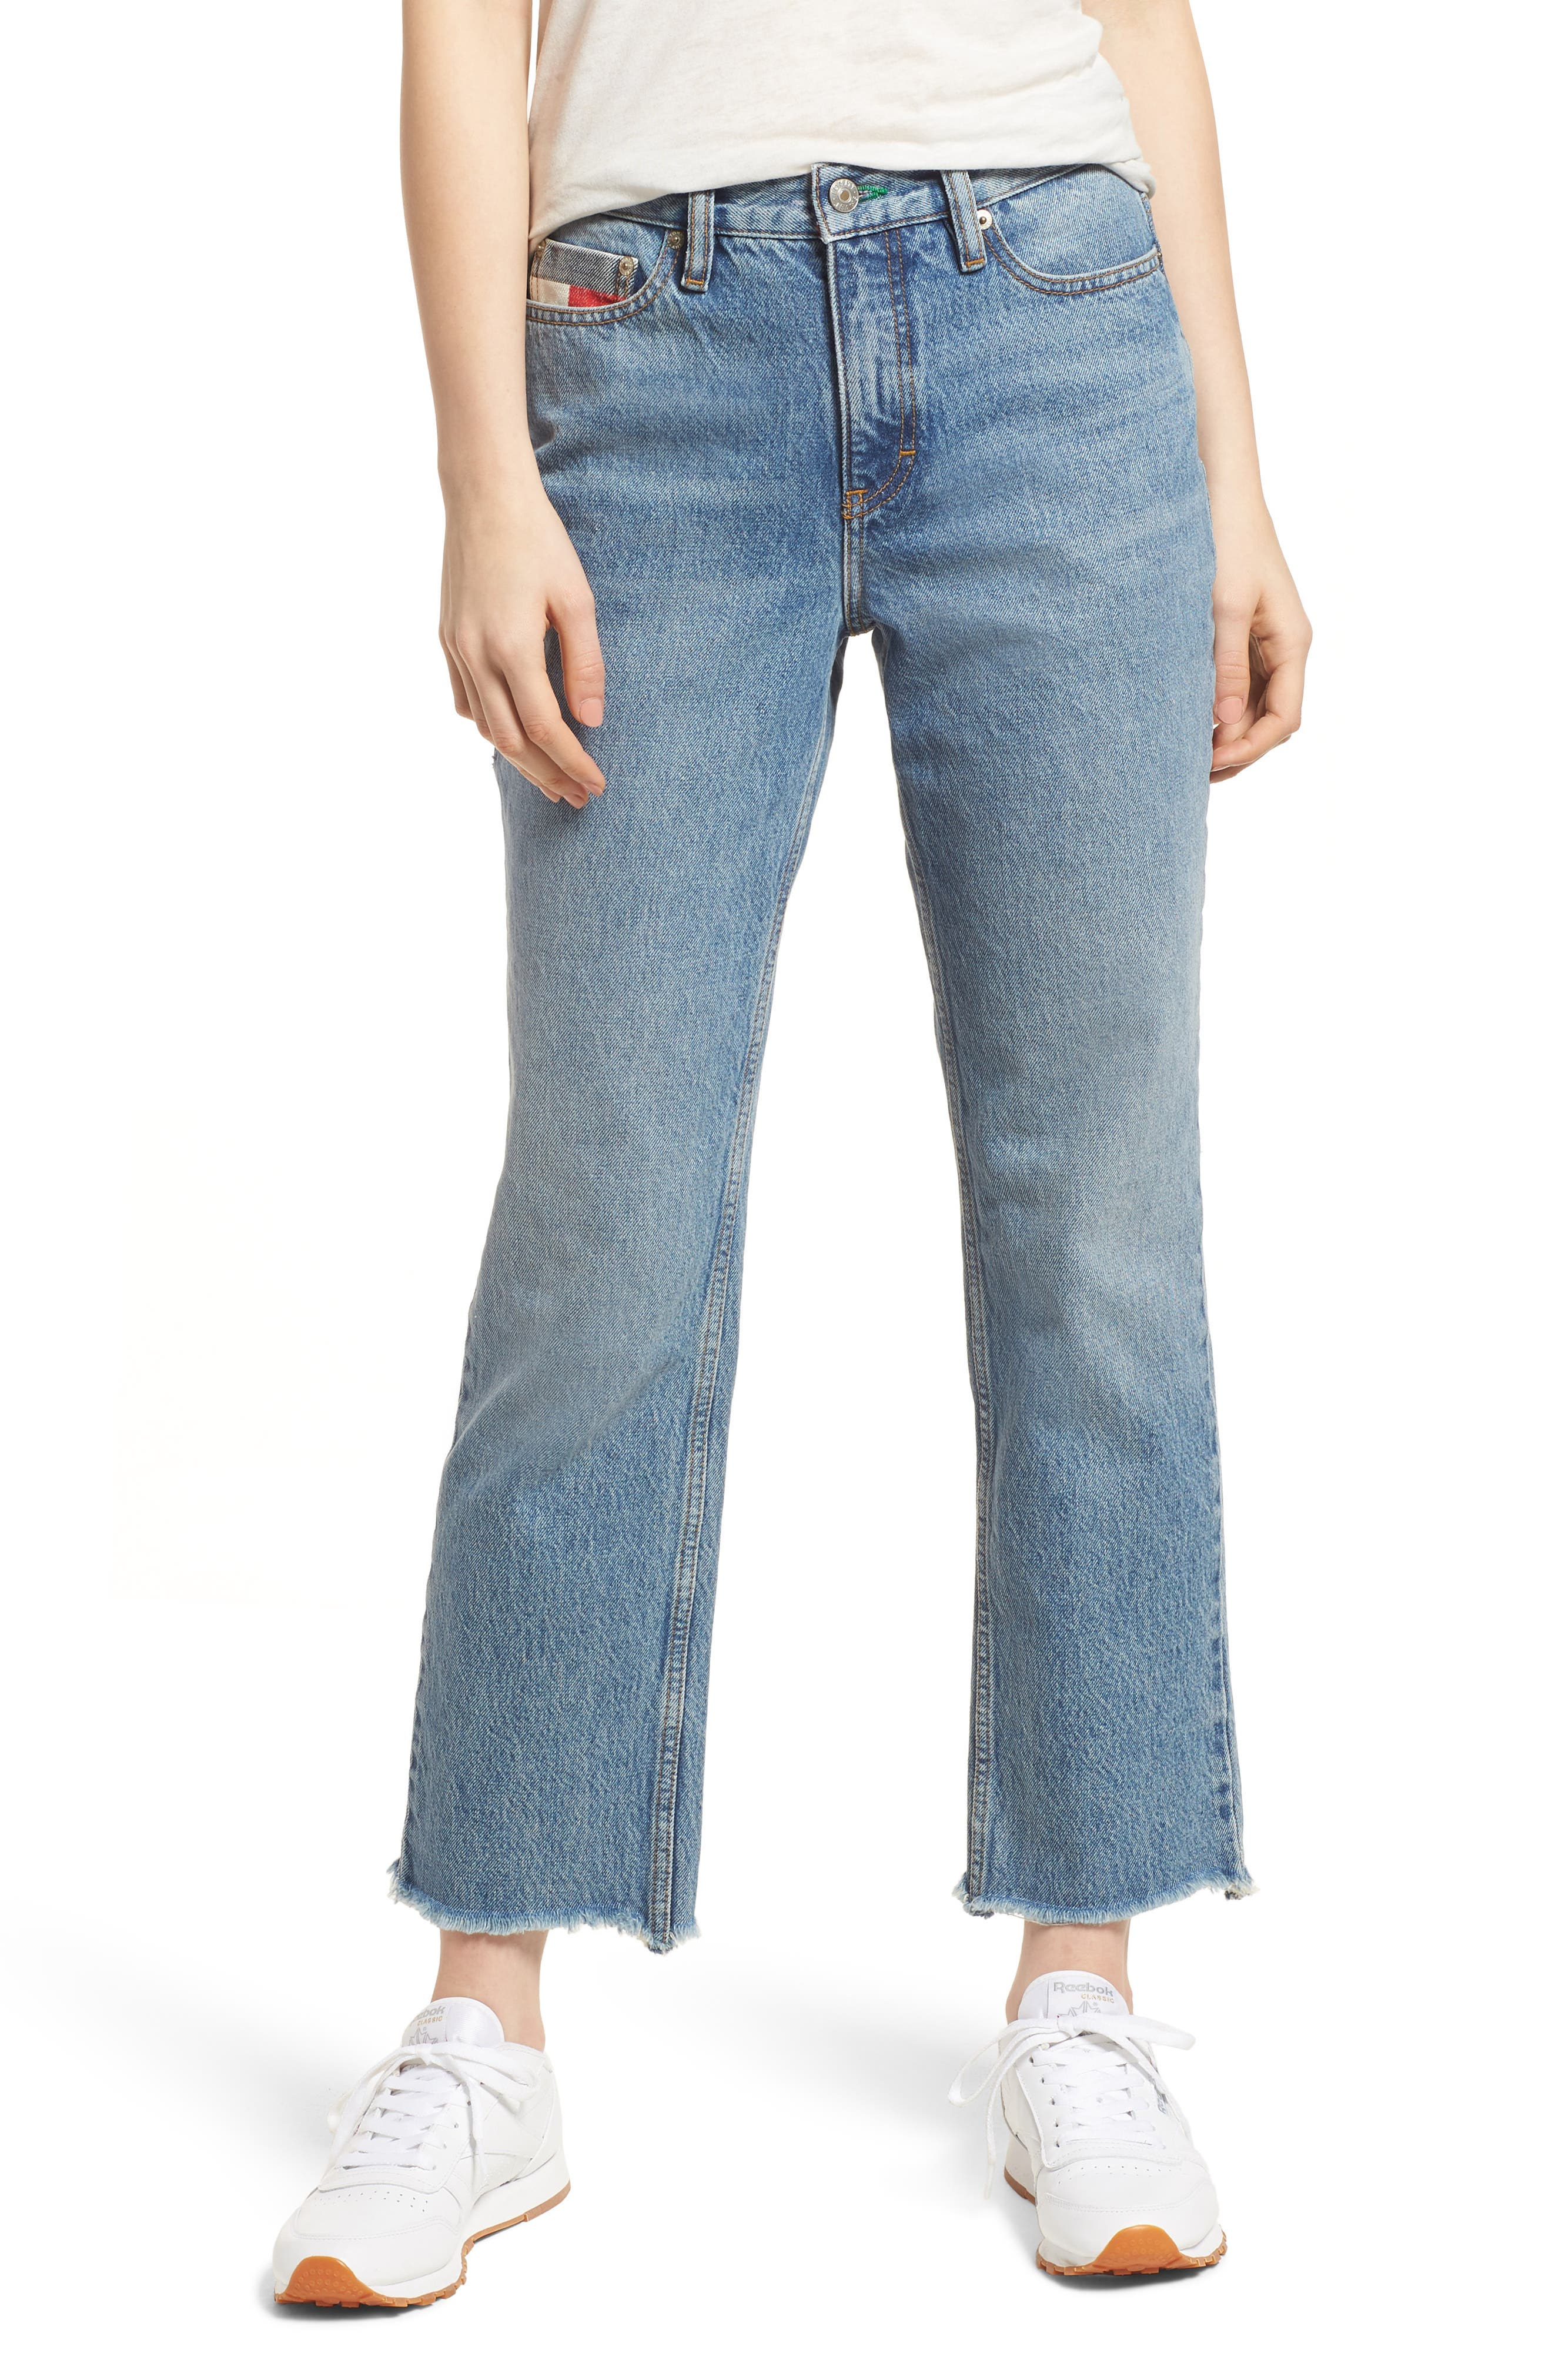 TOMMY JEANS TJW 90s Mom Jeans, Main, color, 401